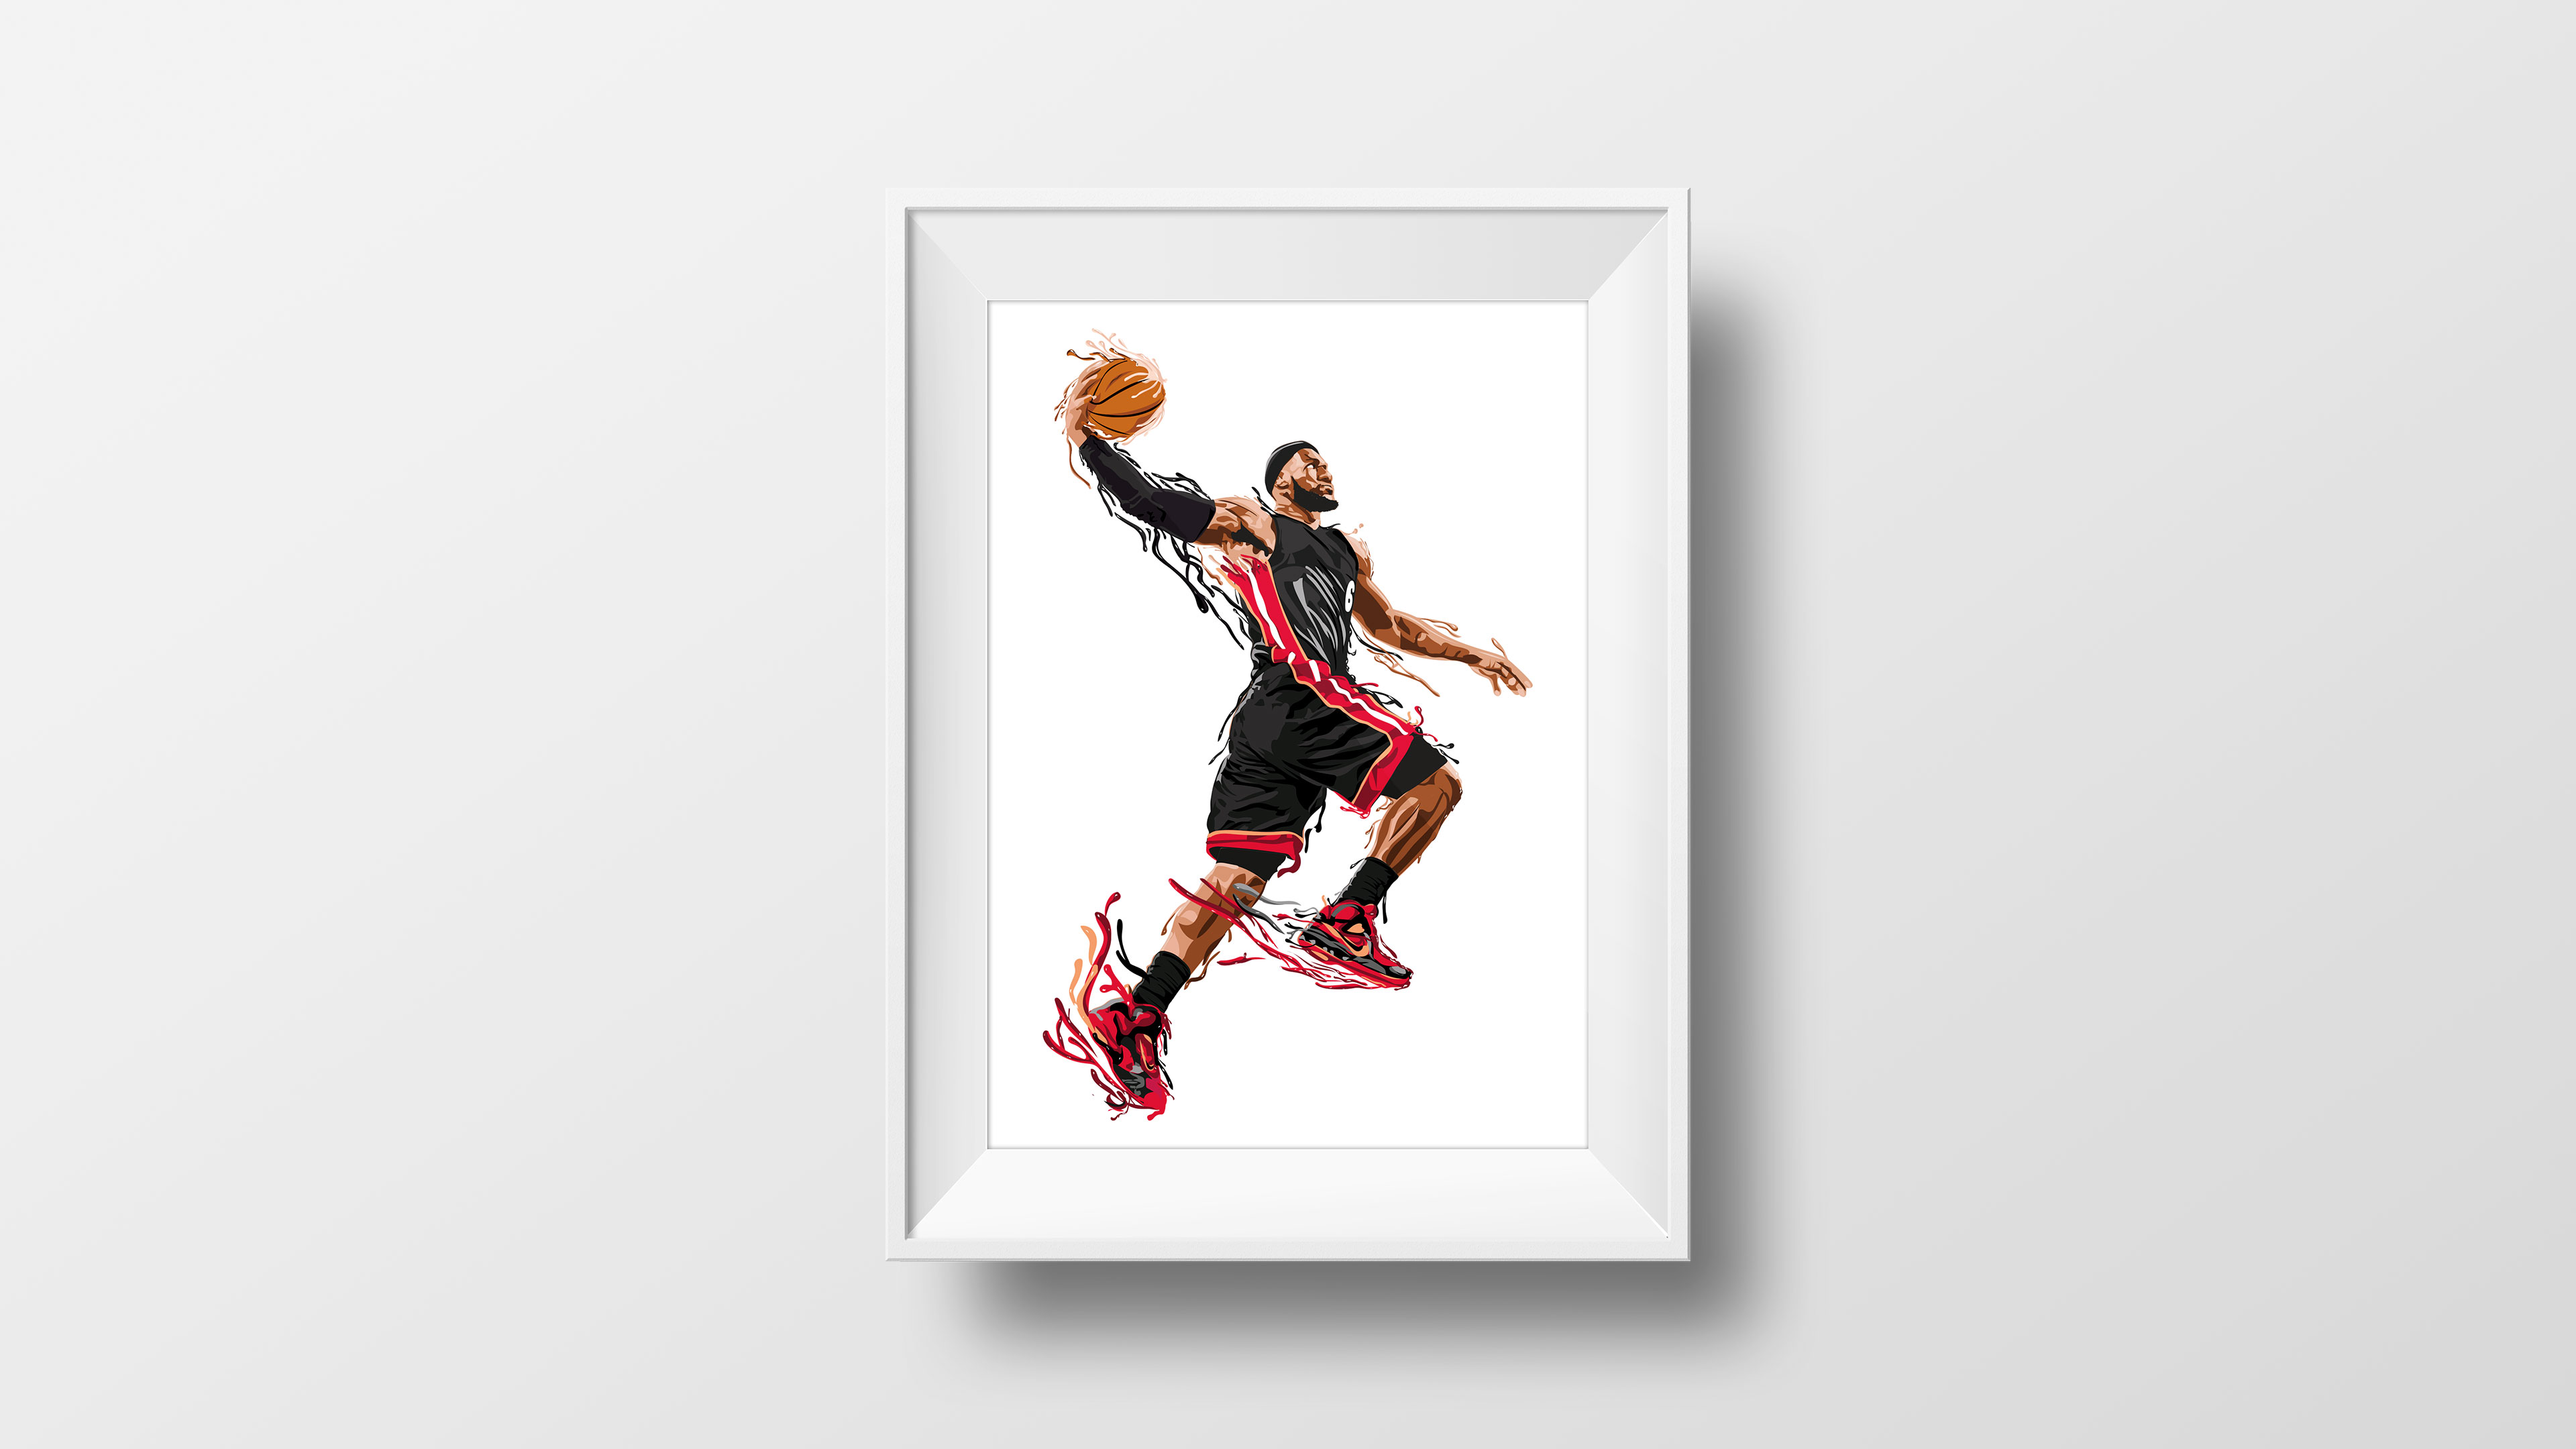 IllustrationLeBron James